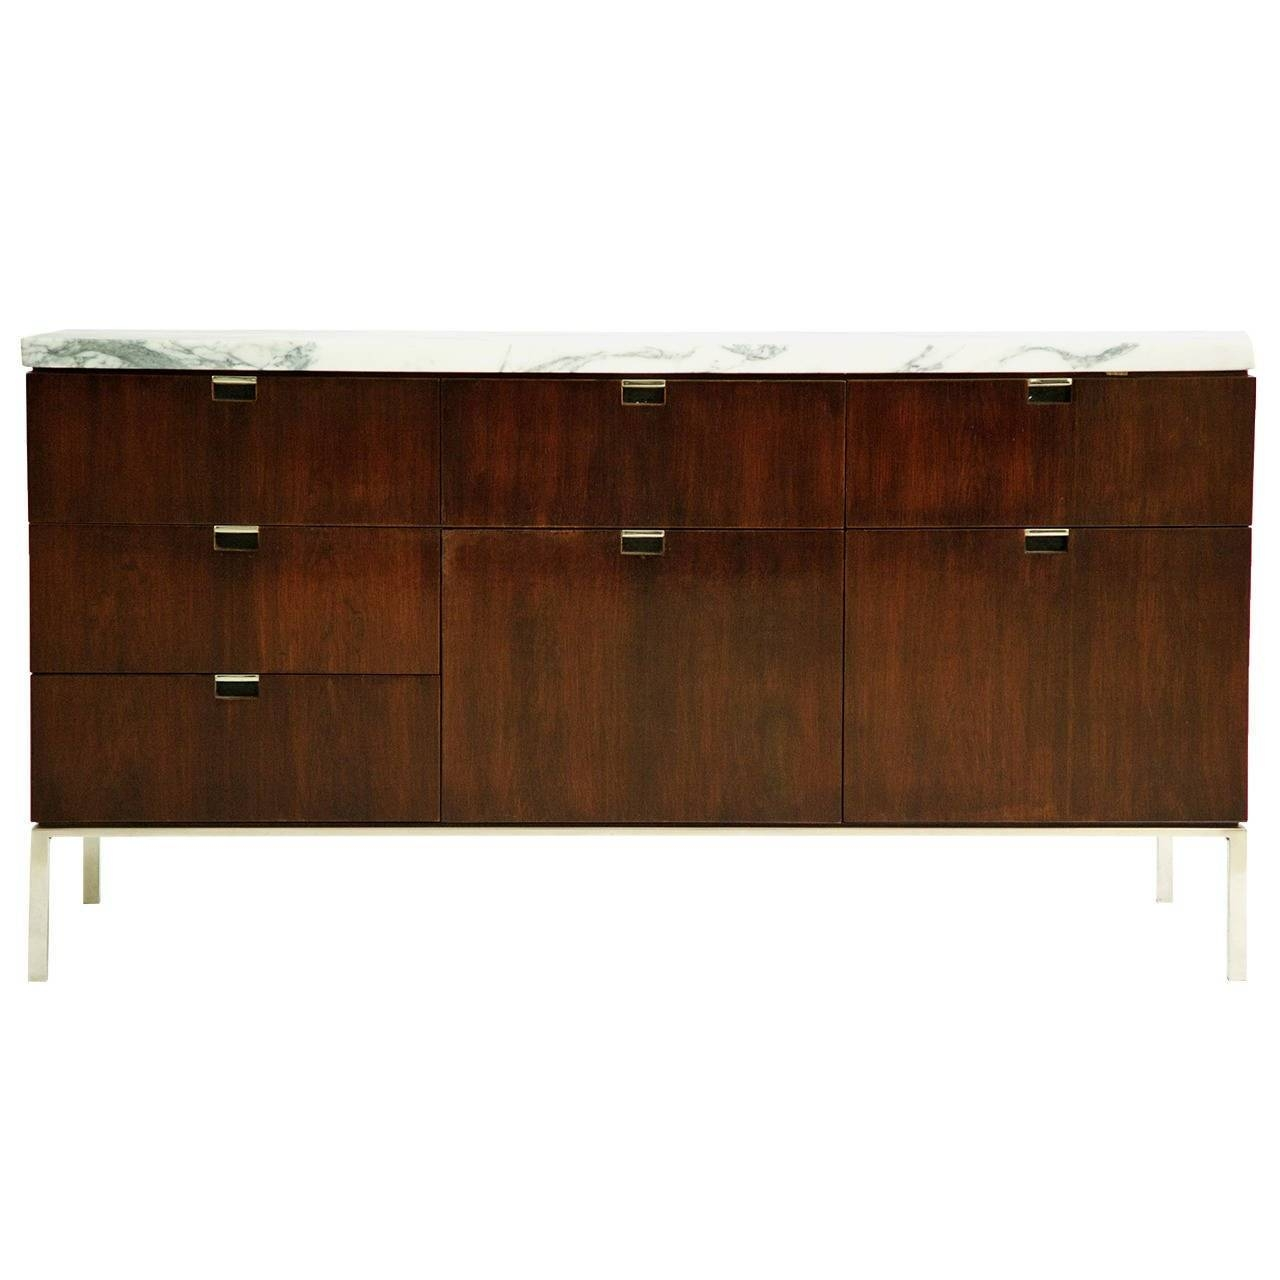 Florence Knoll Sideboards – 26 For Sale At 1Stdibs Inside 2018 Knoll Sideboards (#8 of 15)